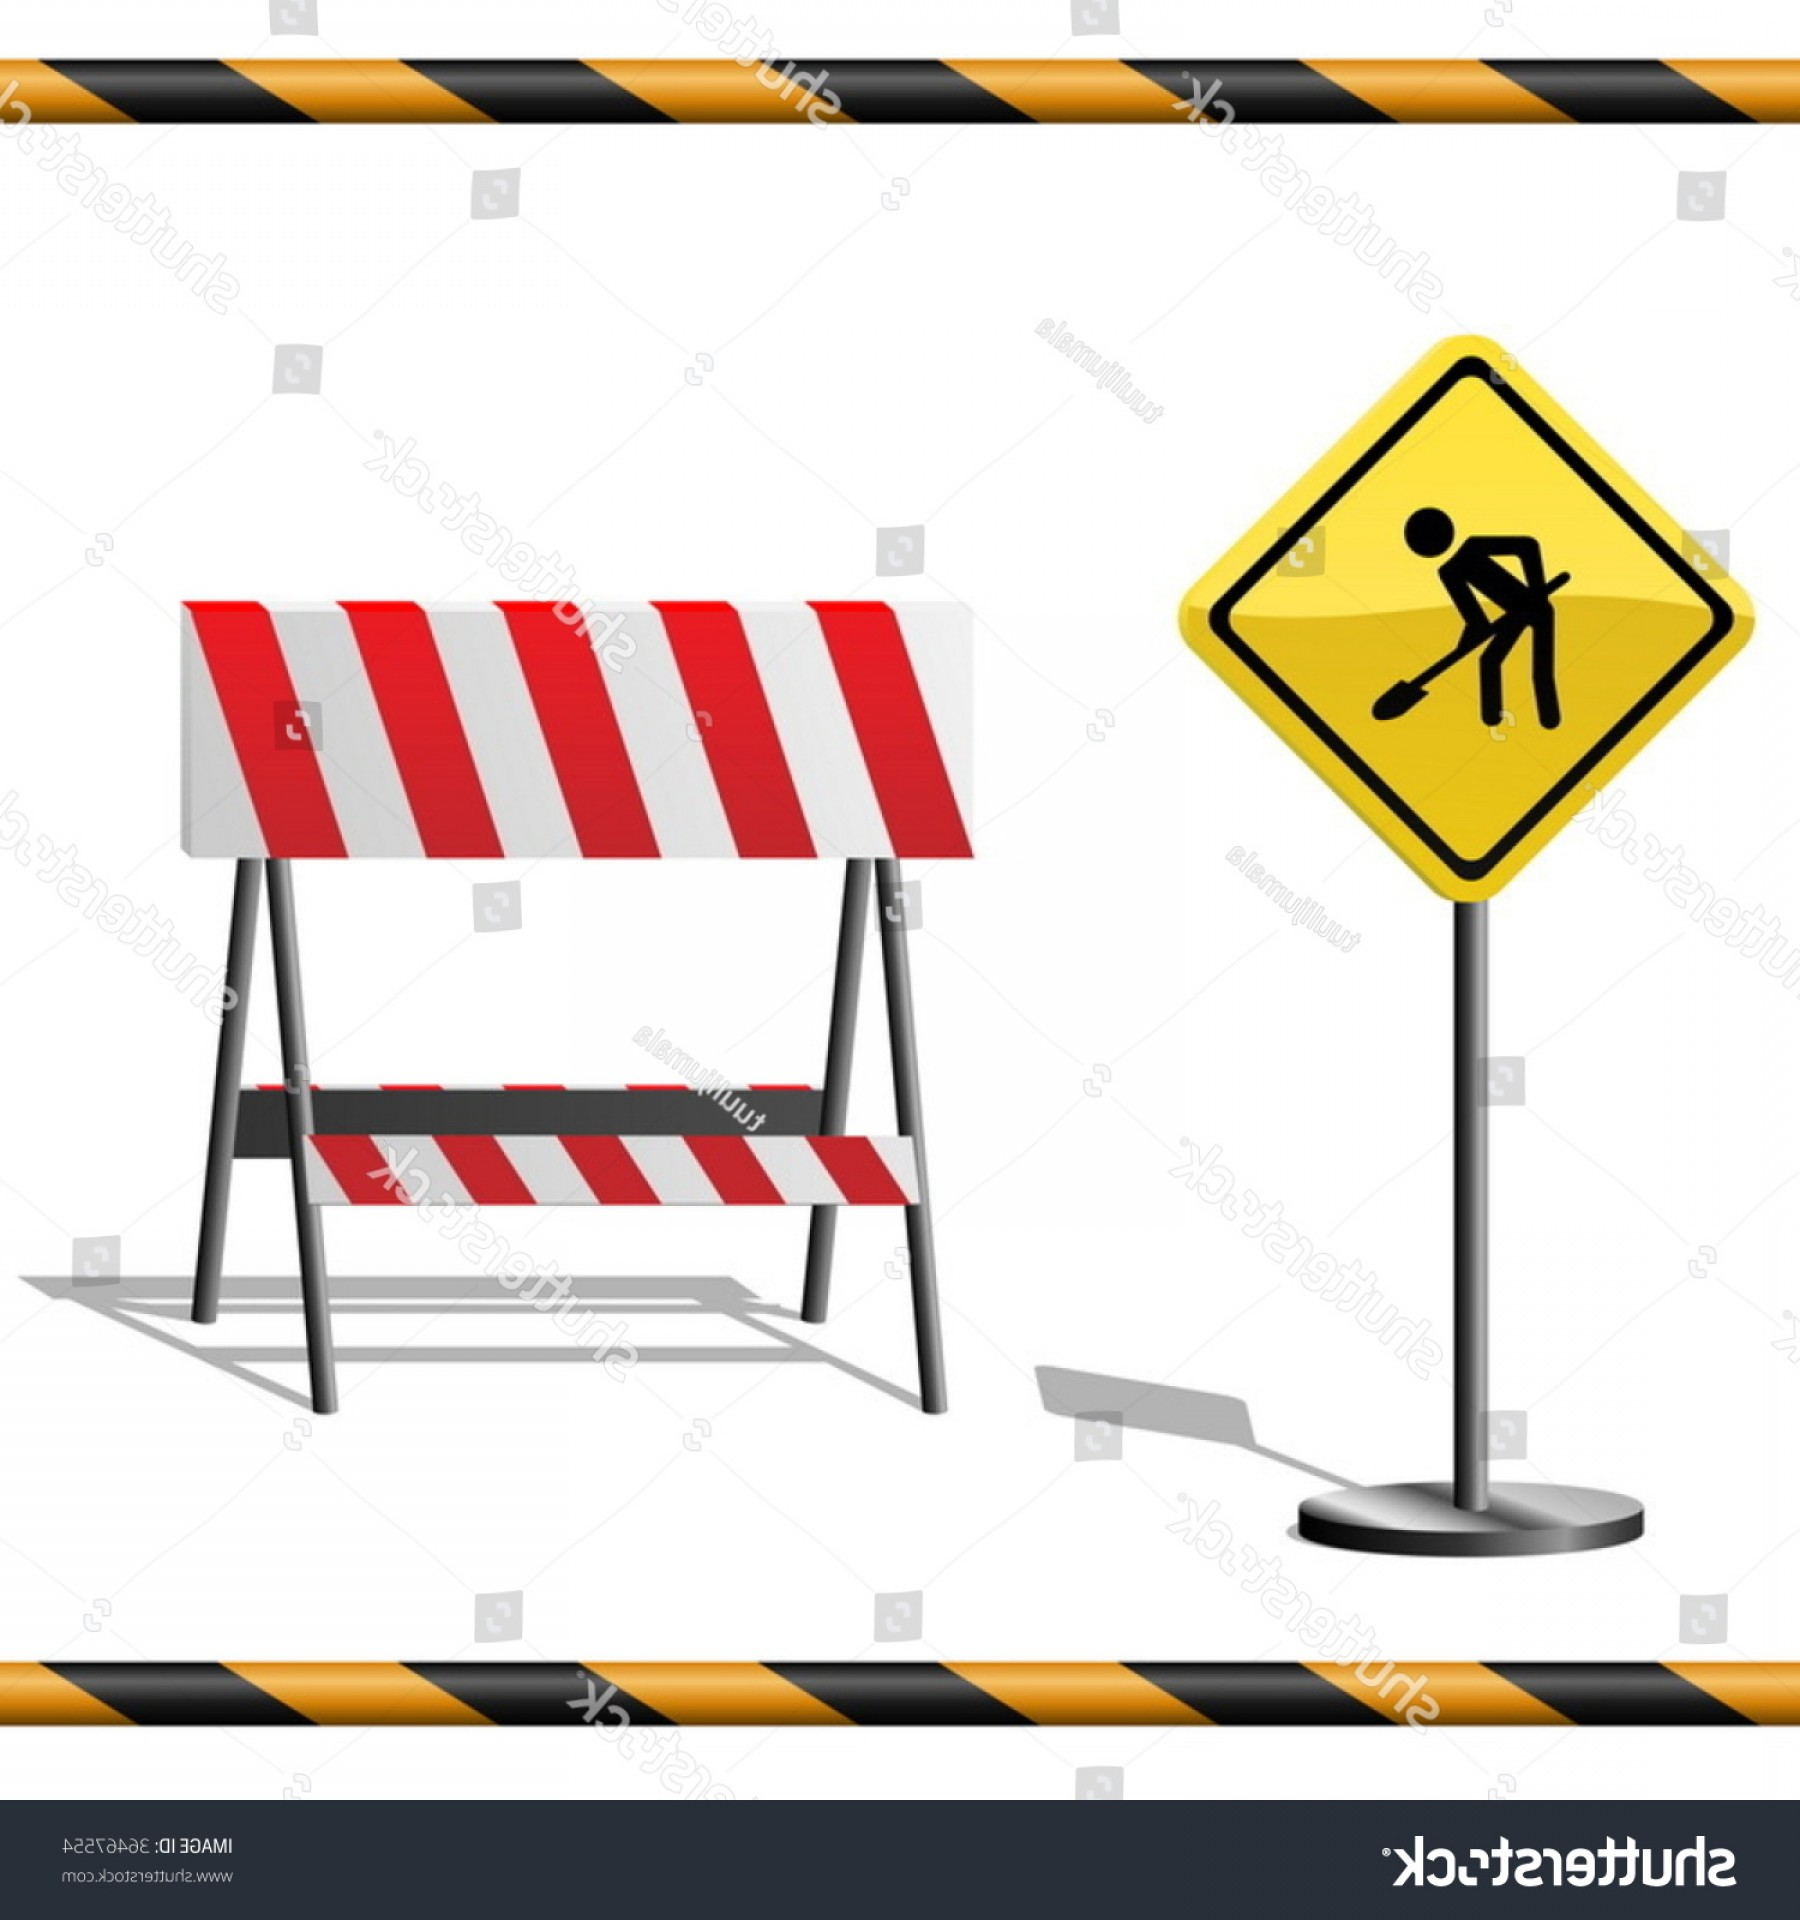 Vector Under Construction Template: Under Construction Vector Template Warning Road